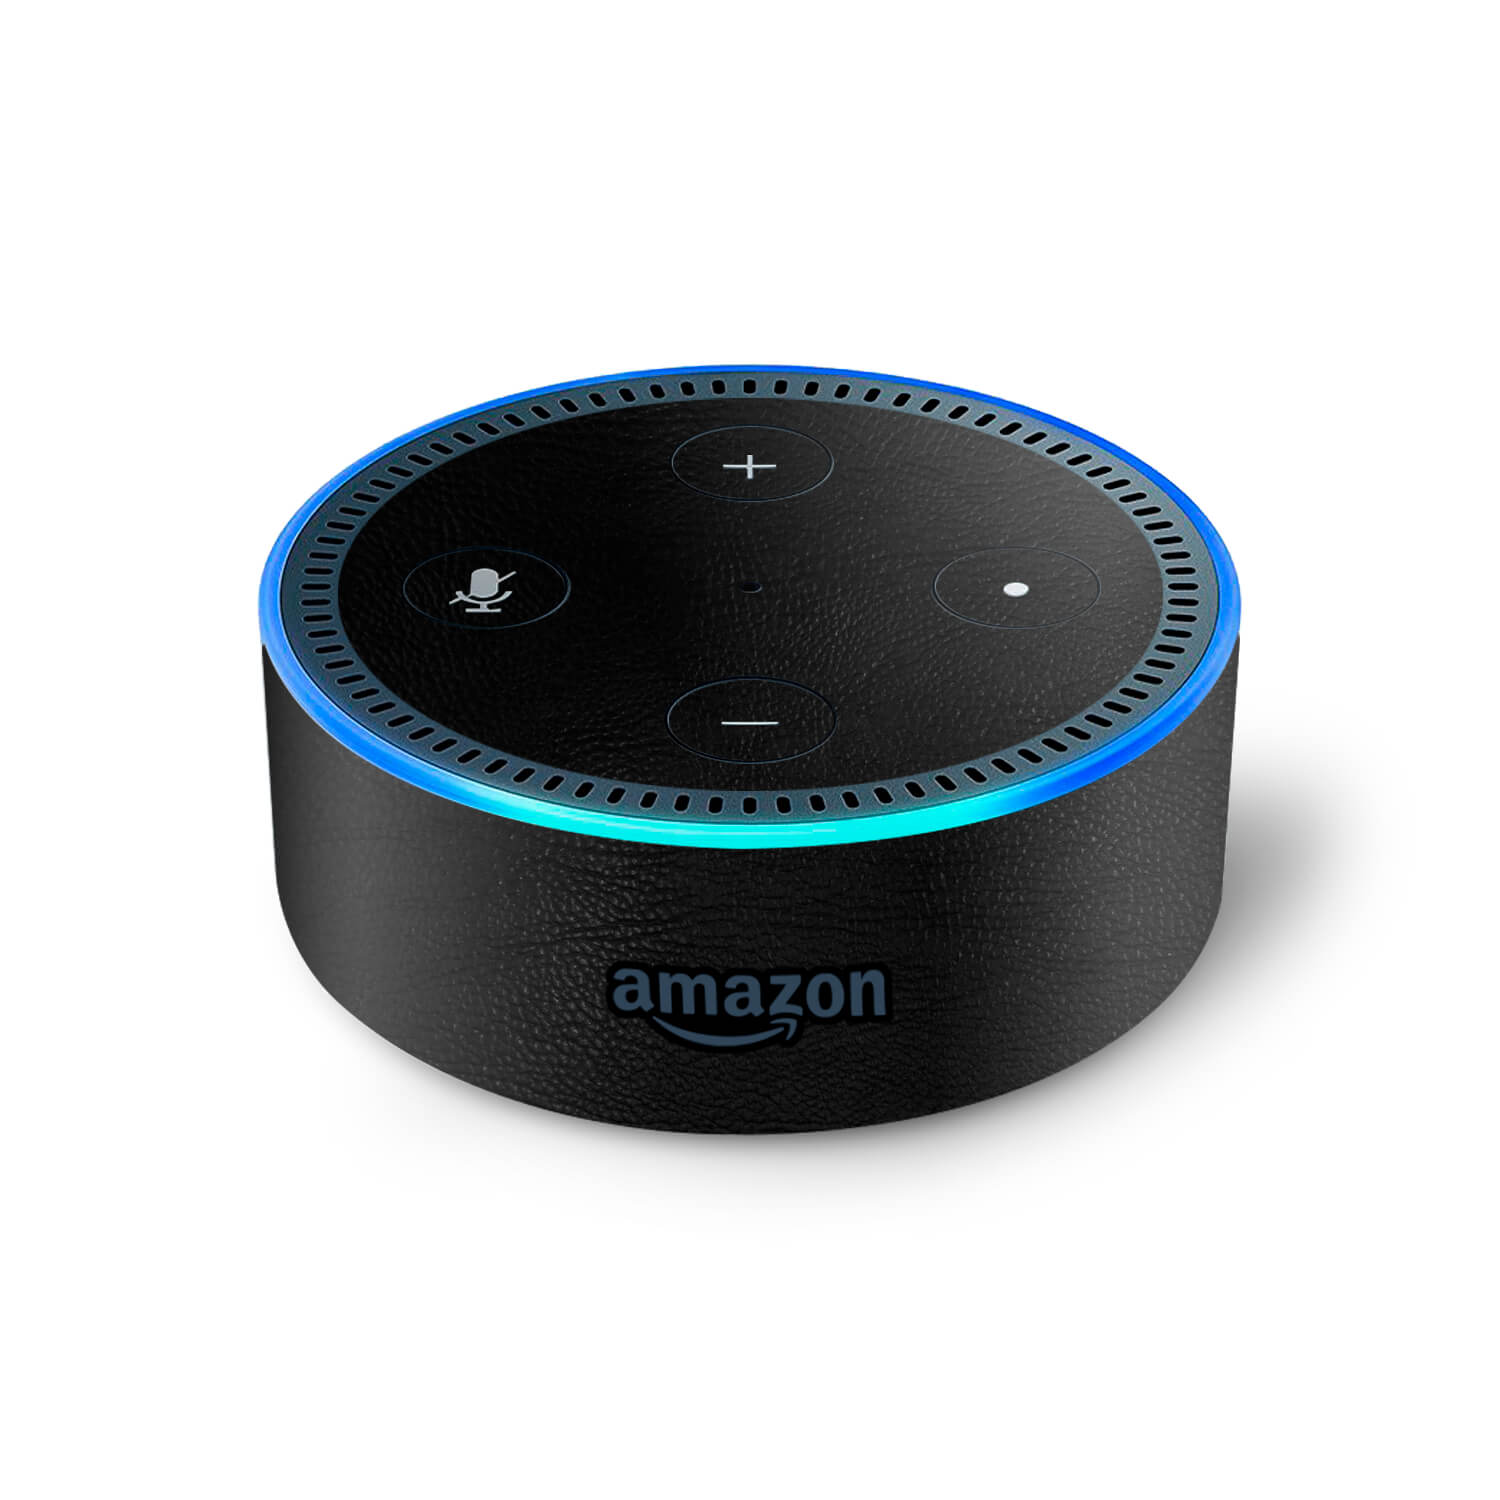 Amazon Uk Xbox 1 Wiring Diagrams Diagram Echo Dot 2nd Gen Skins And Wraps Xtremeskins One Console